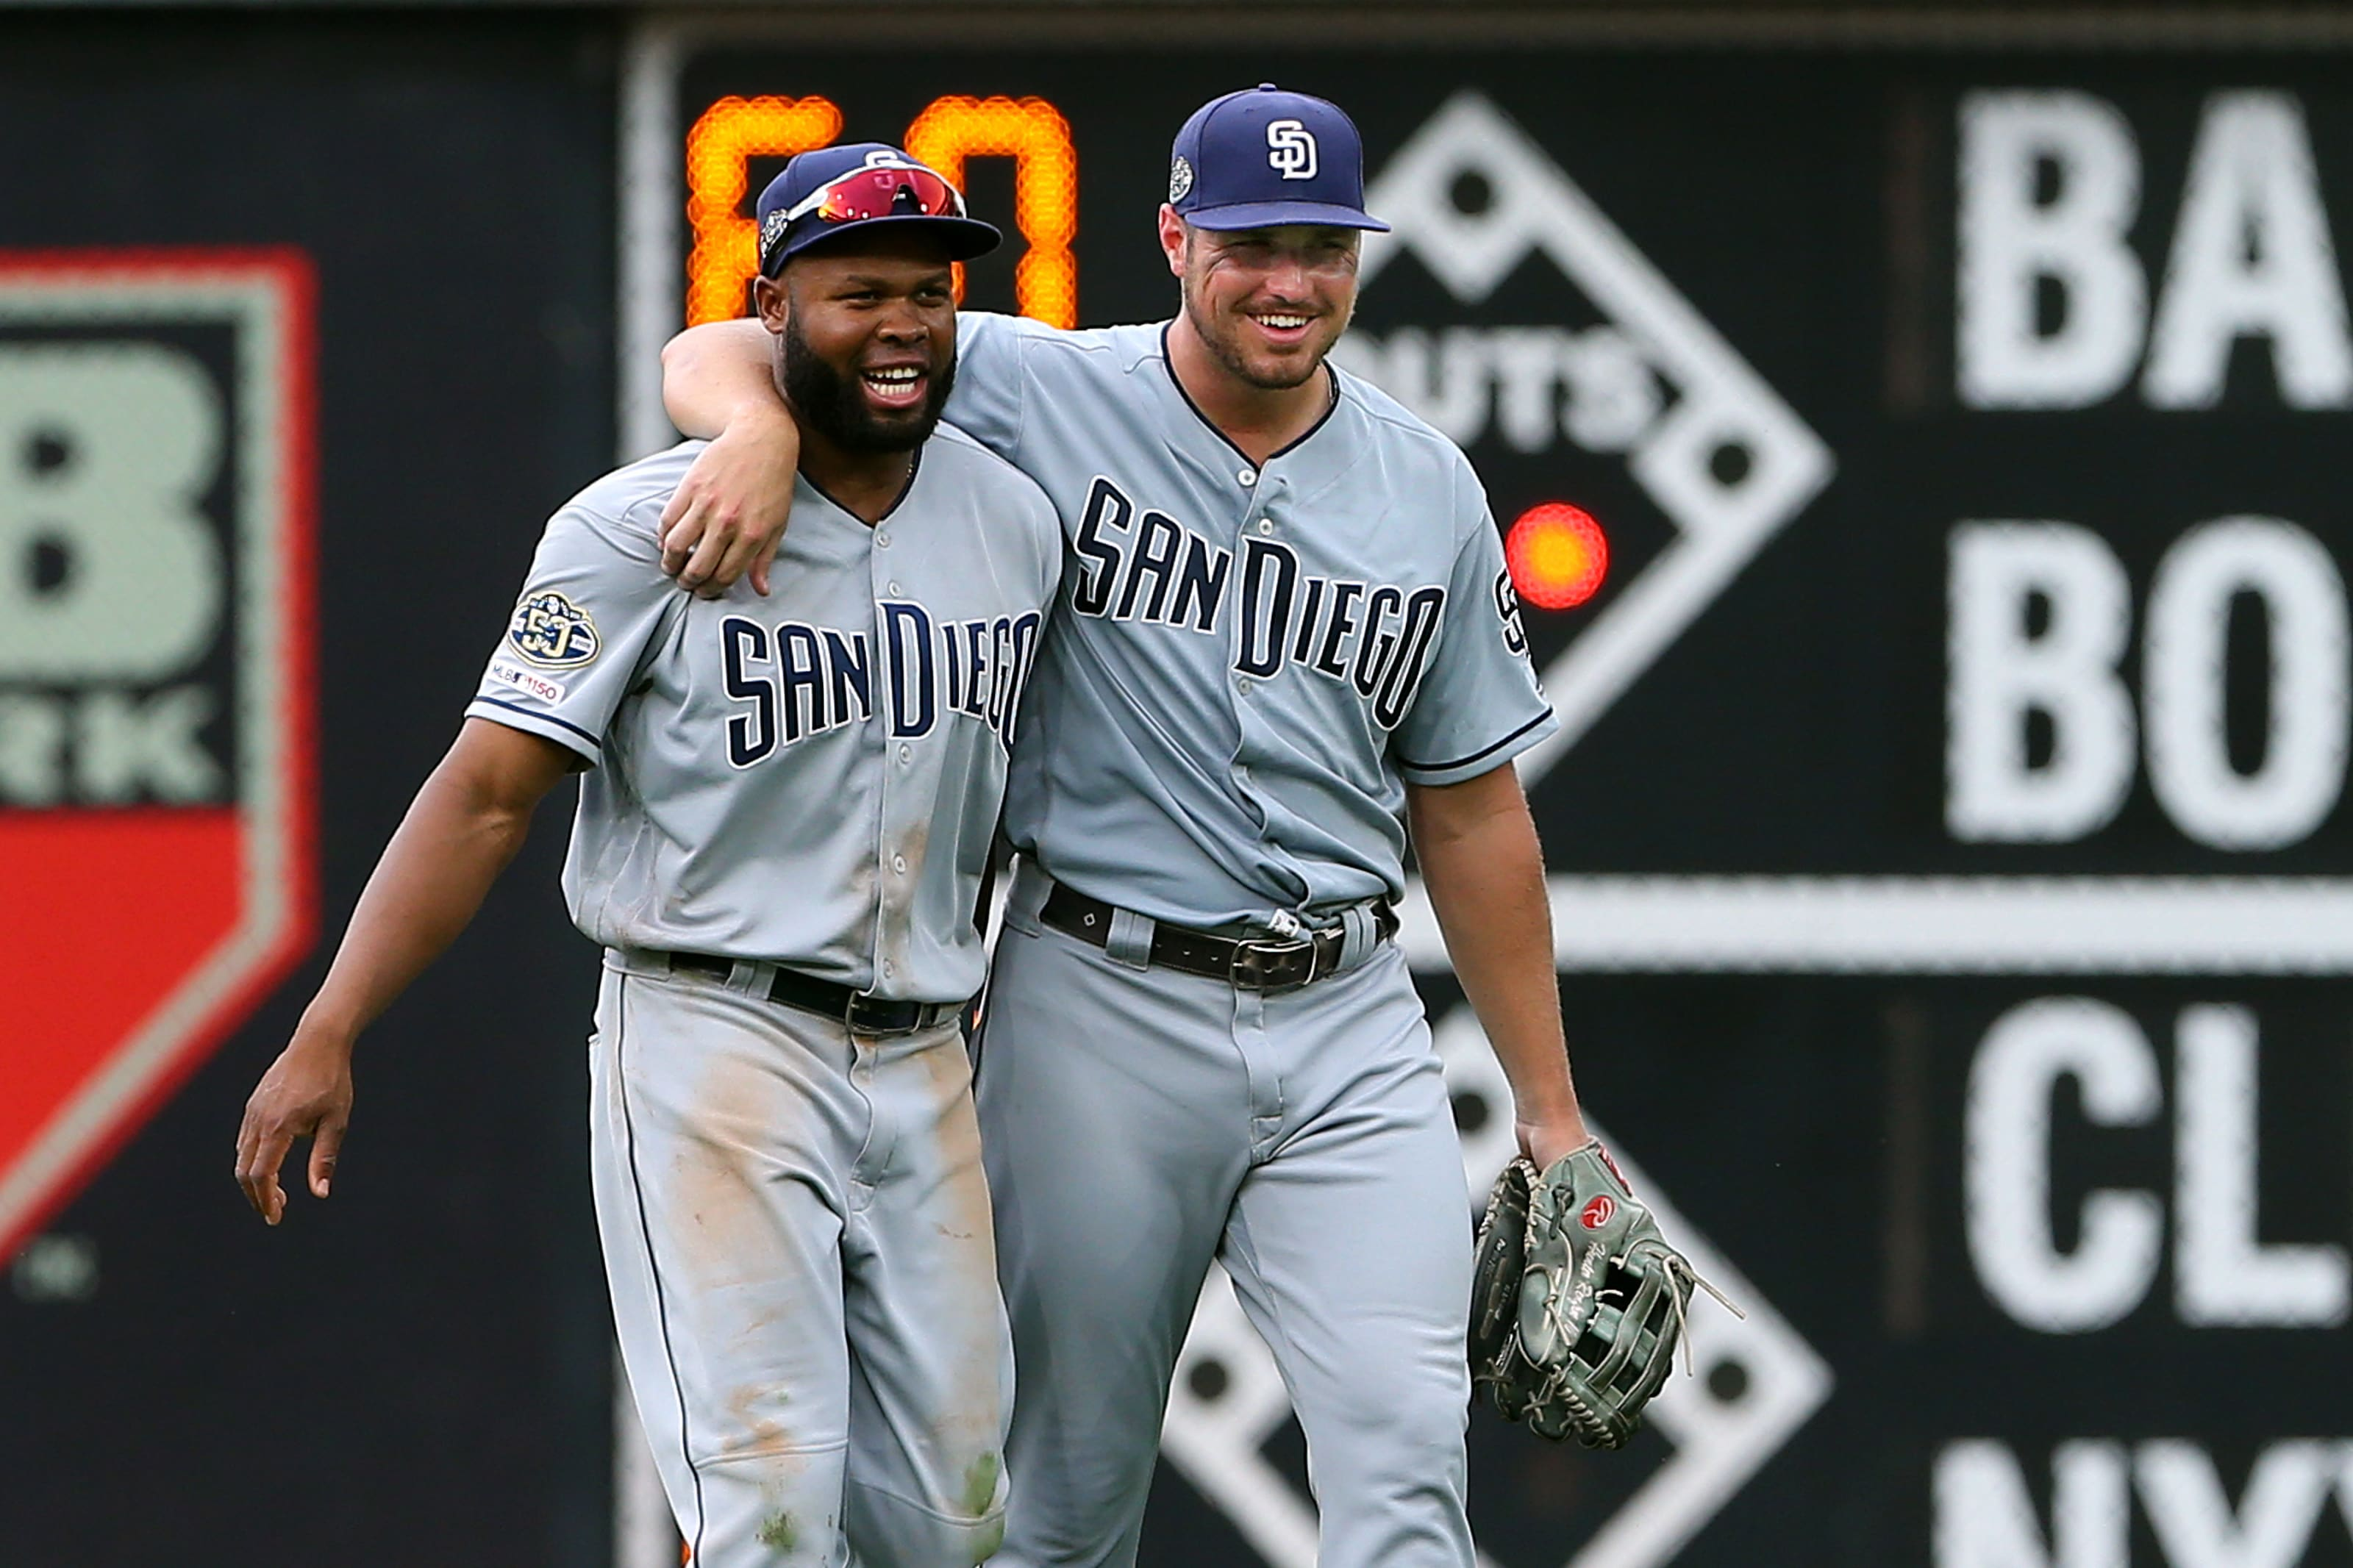 San Diego Padres: Are we giving up on Manuel Margot too soon? - Page 2